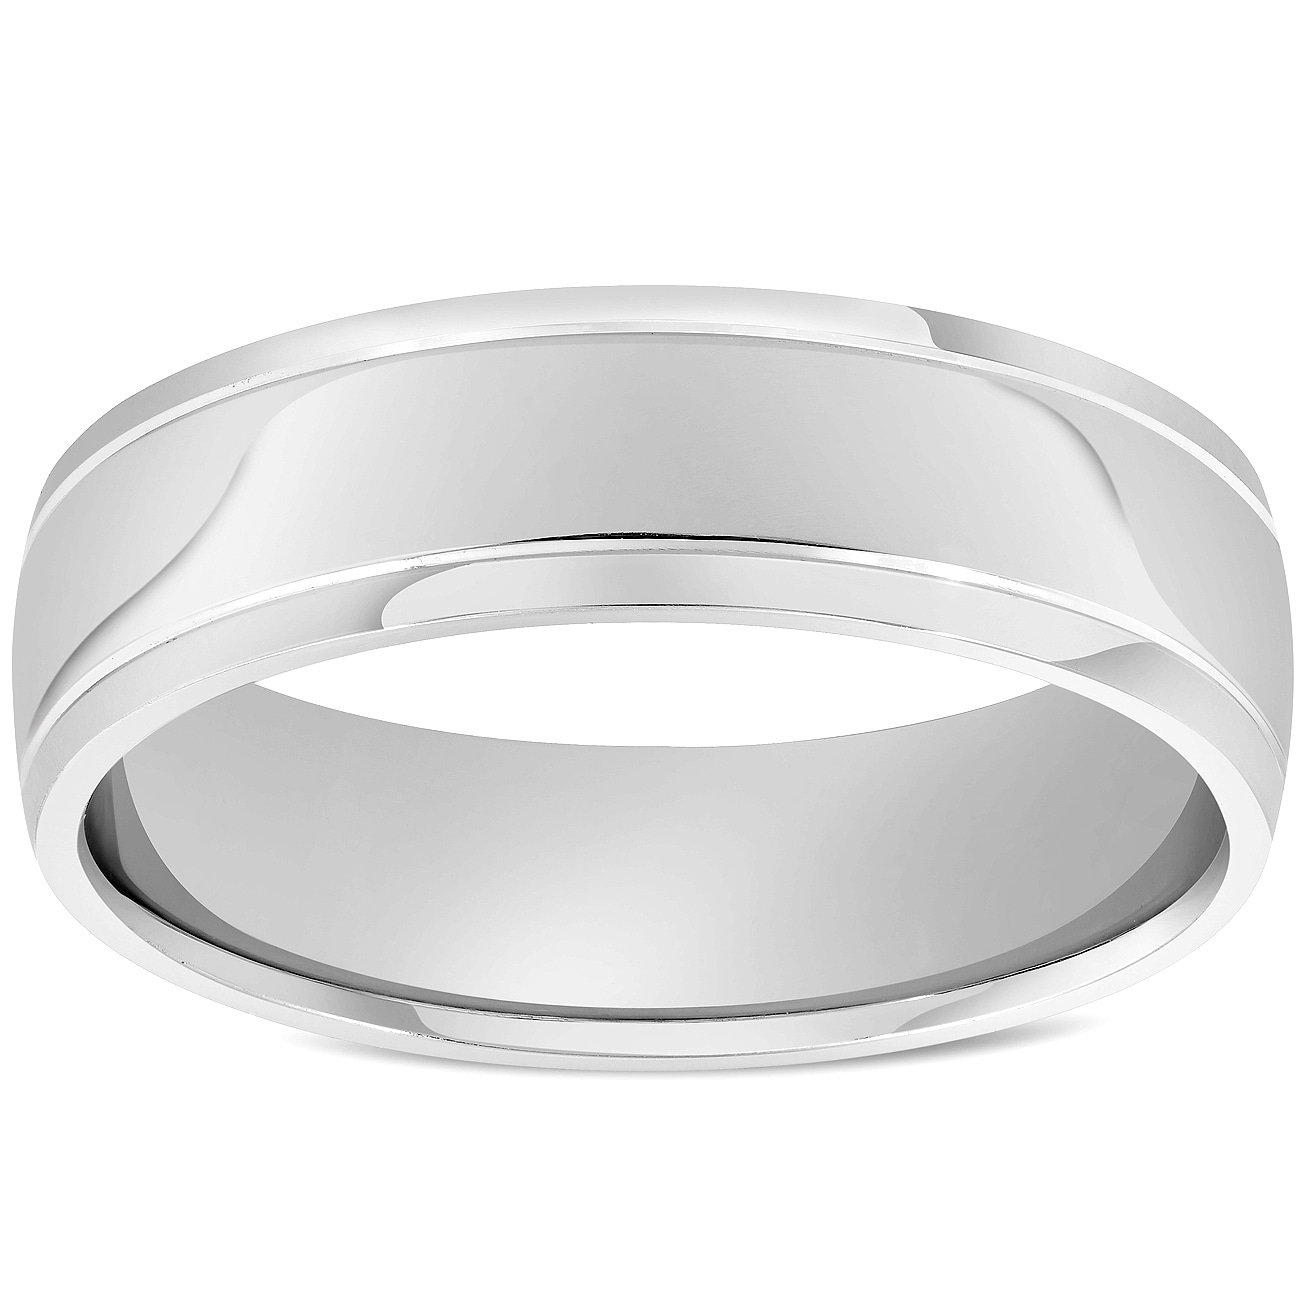 14k White Gold Dome Childrens Bangle with a Polished Finish